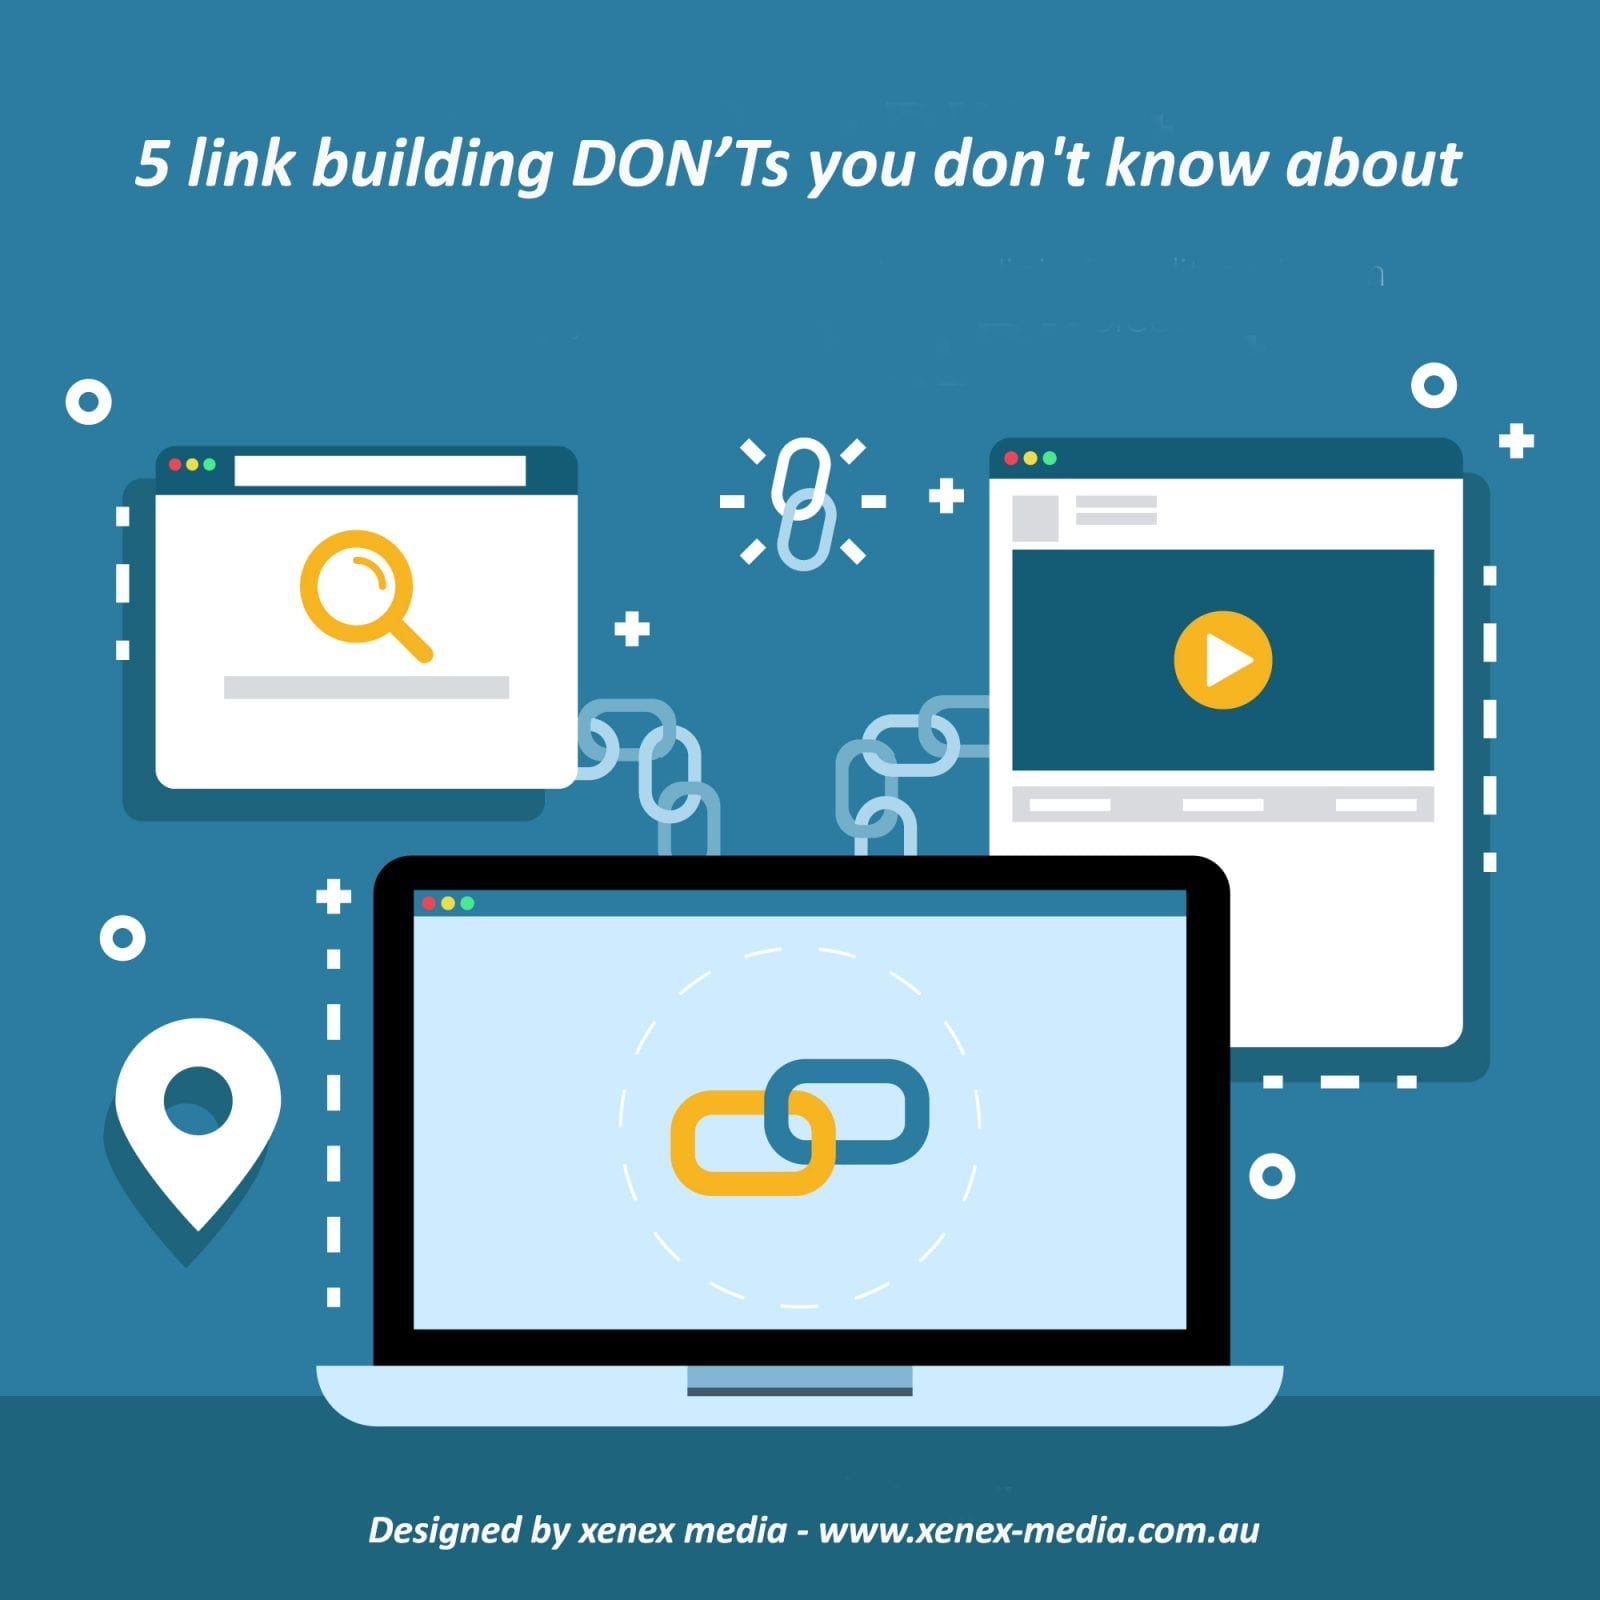 5 link building DON'Ts you don't know about, link building strateg 2019, SEO link building strategy 2019, link building 2019, link building